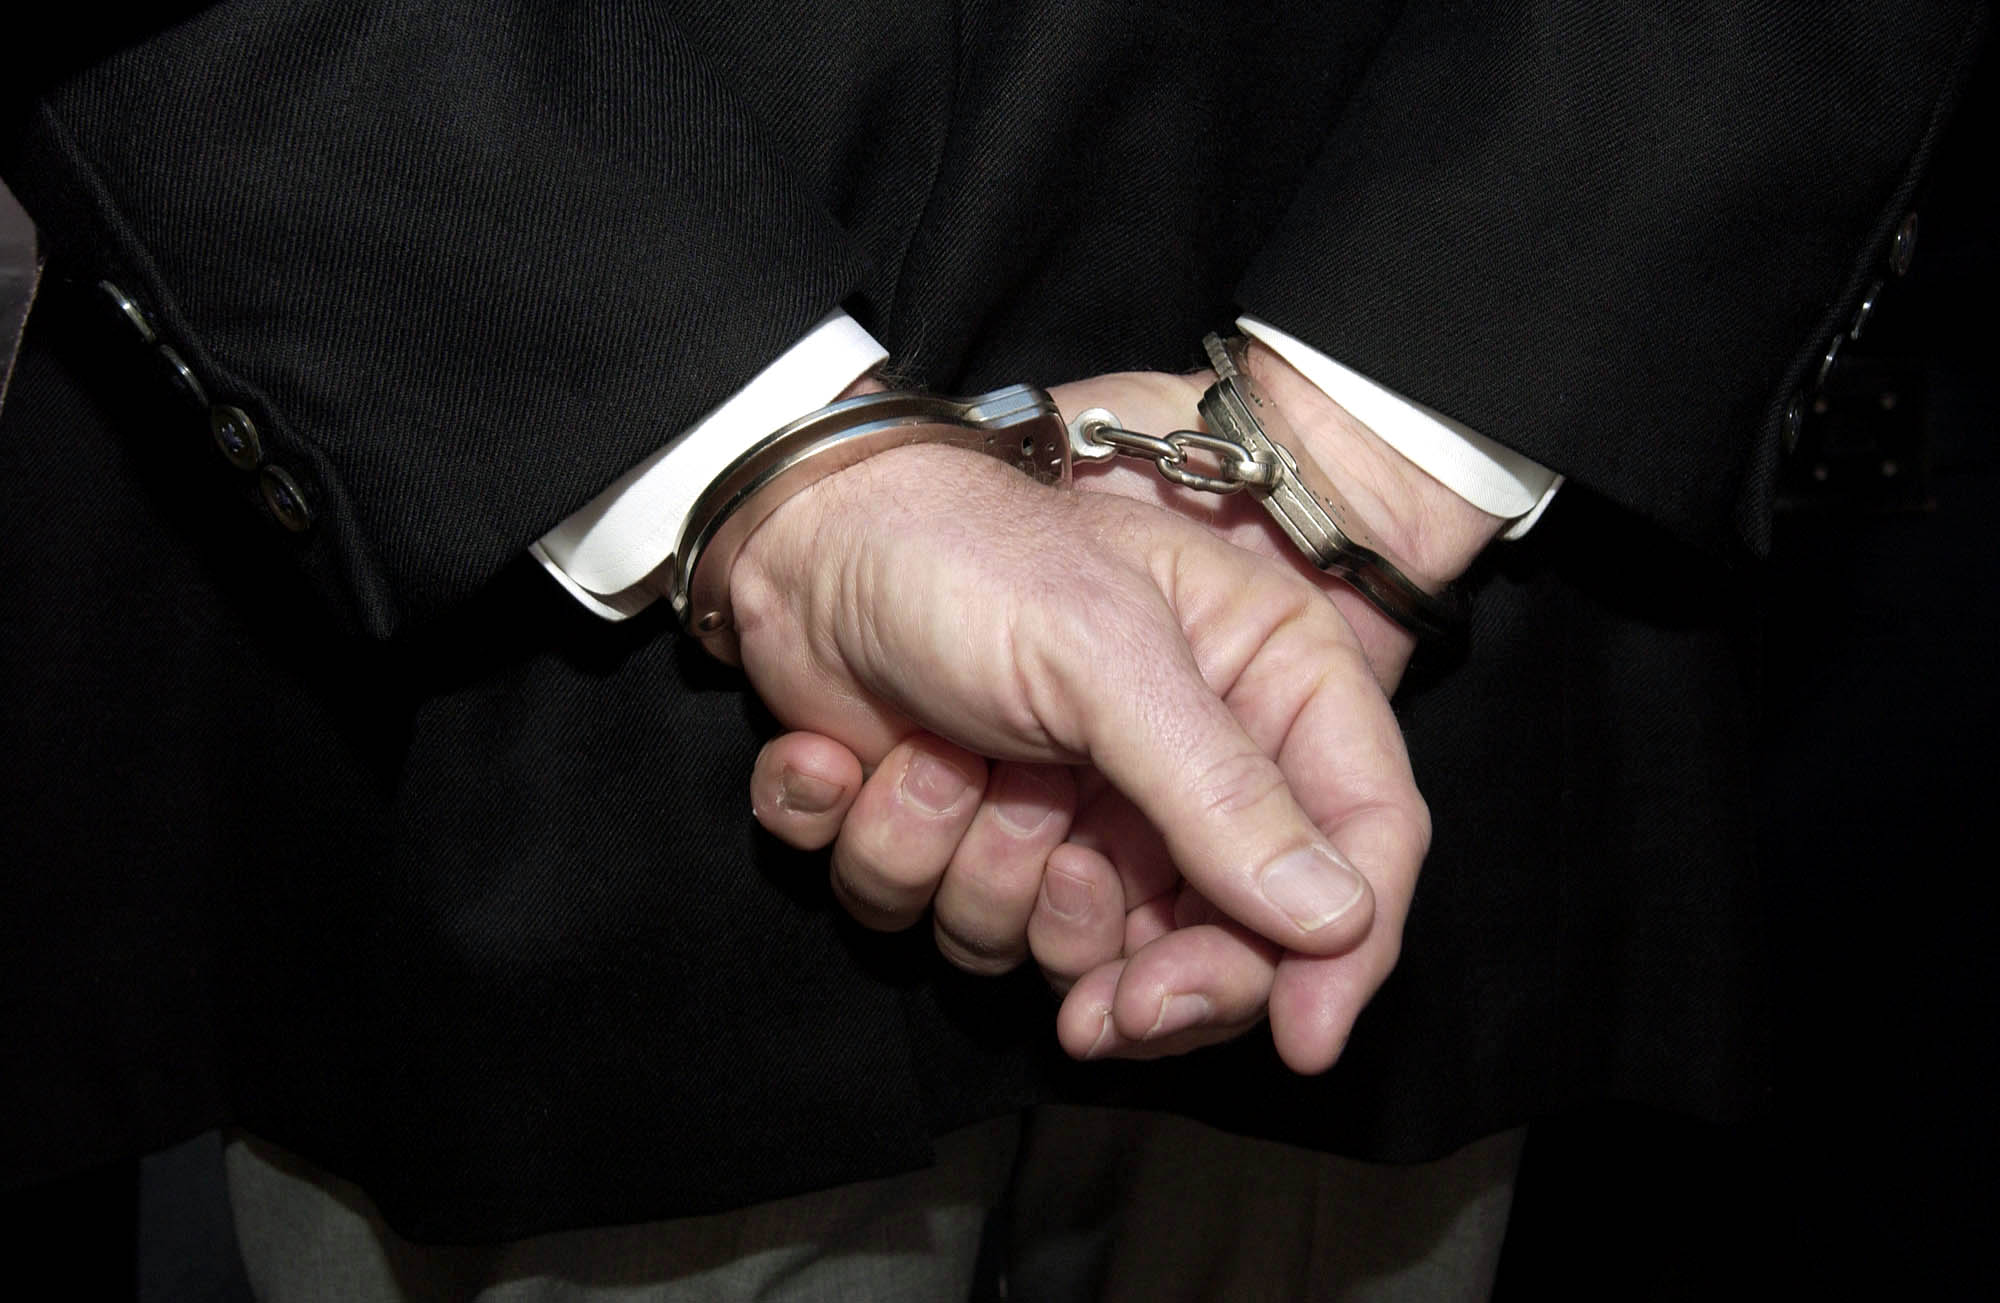 Former Worldcom CEO Bernard Ebbers, is escorted in handcuffs from the U.S. Federal Bureau of Investigation where he turned himself in this morning in New York, March 3, 2004.  He was indicted yesterday for allegedly masterminding the biggest accounting fraud in US history.  Photographer:  Daniel Acker/ Bloomberg News.